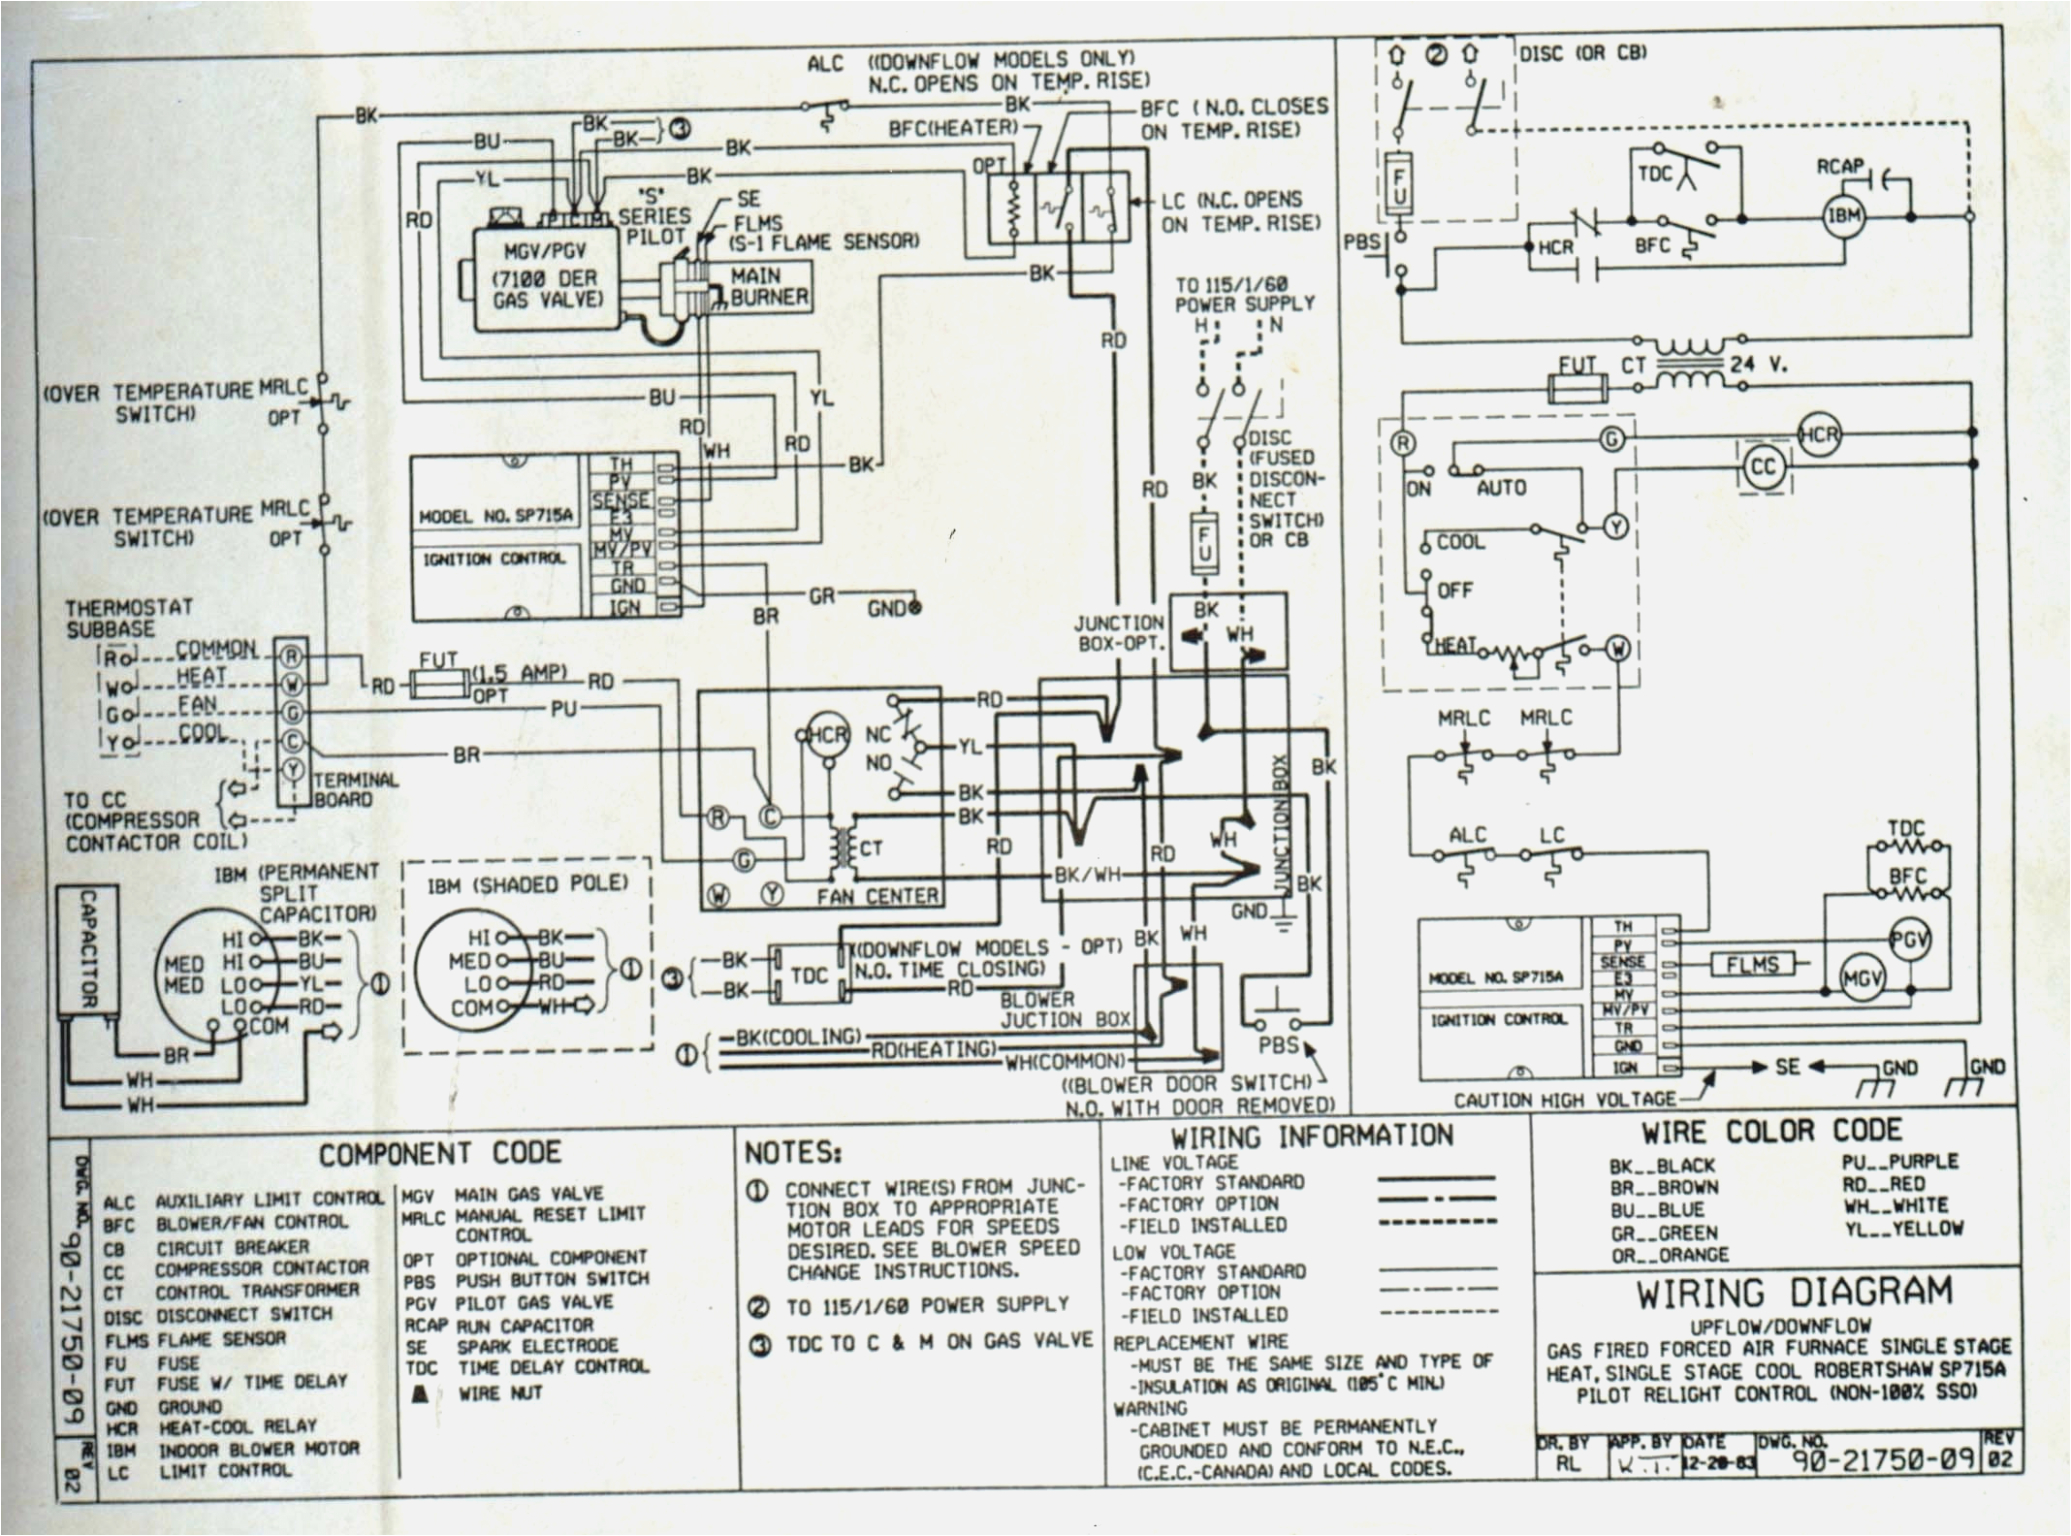 furnace wiring specifications wiring diagram sys mortex furnace wiring diagram